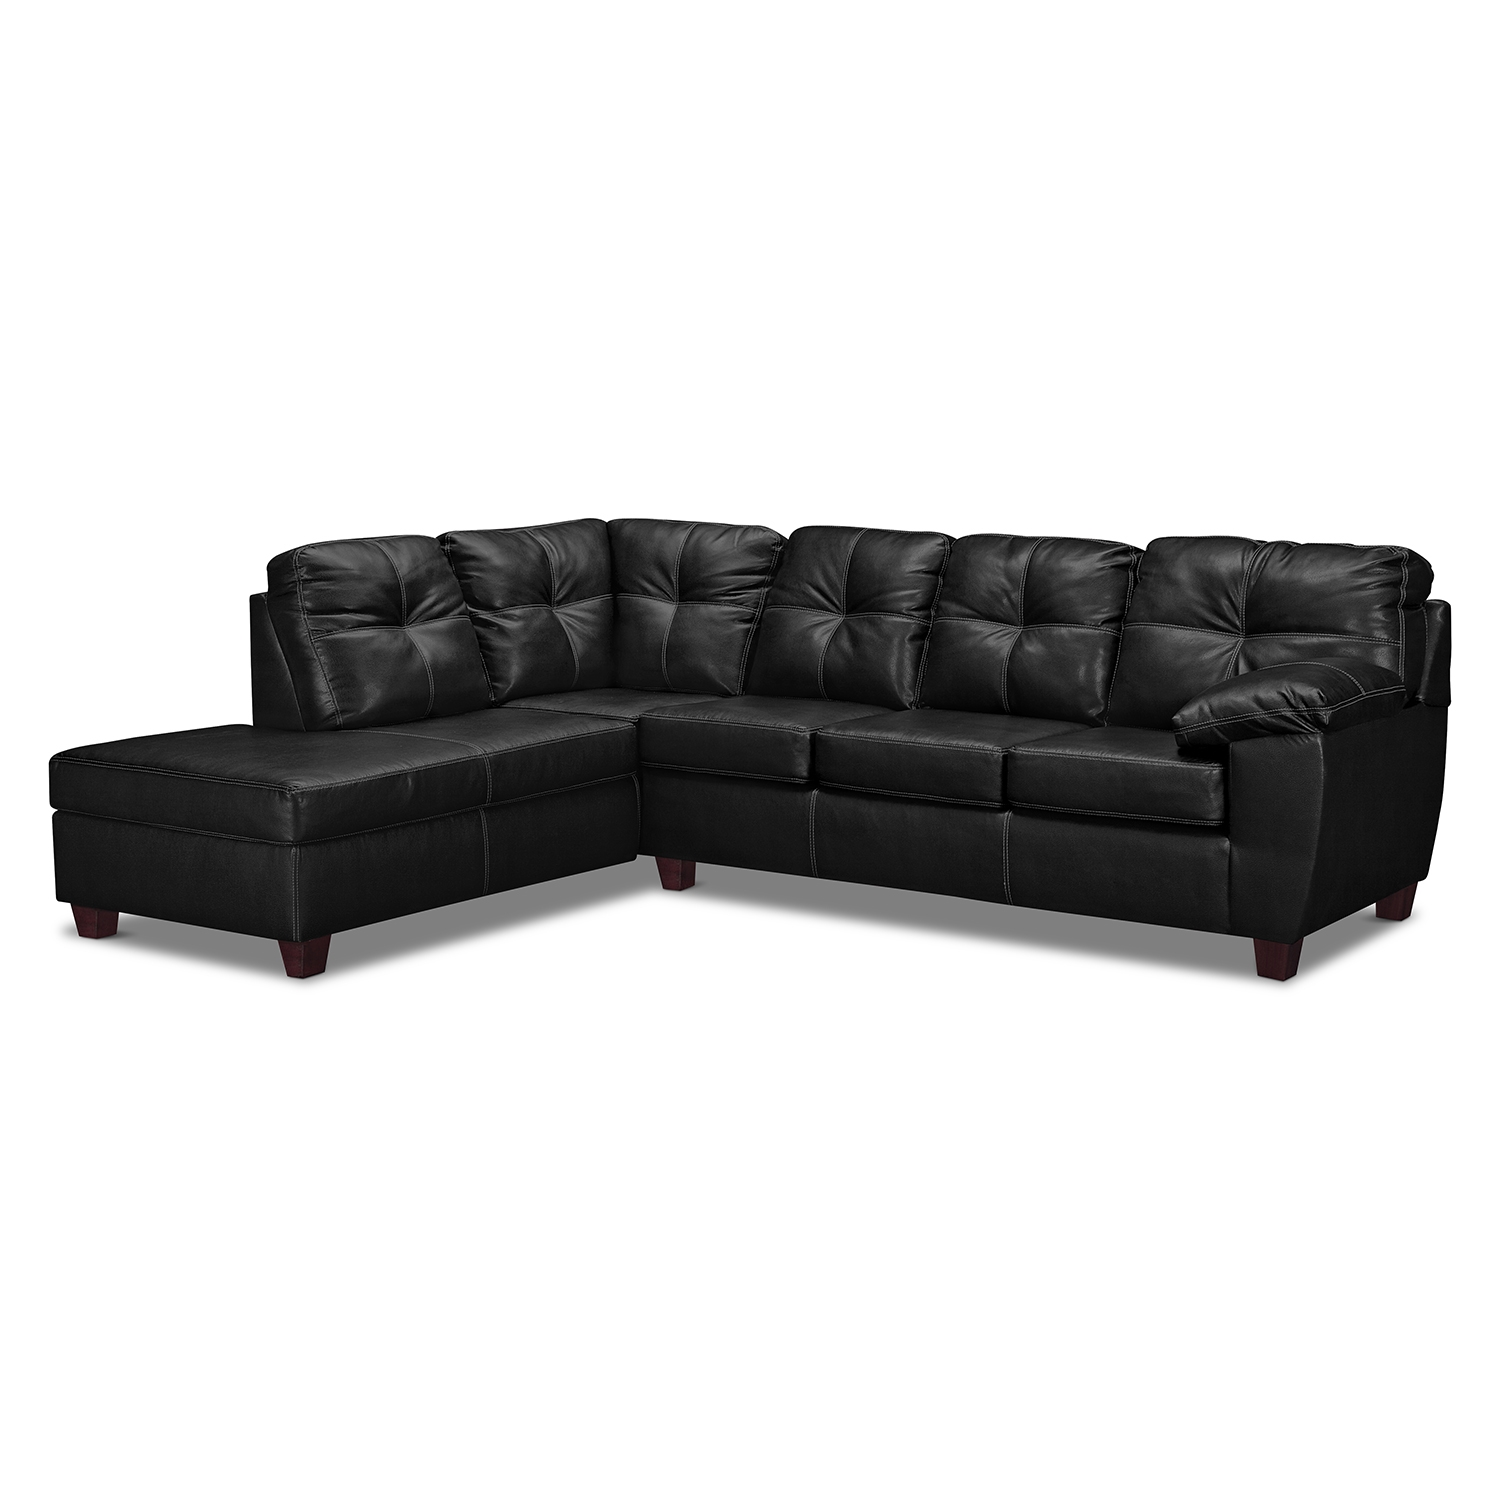 Interesting sofa sectionals for home interior design with leather sectional sofa and sectional sleeper sofa